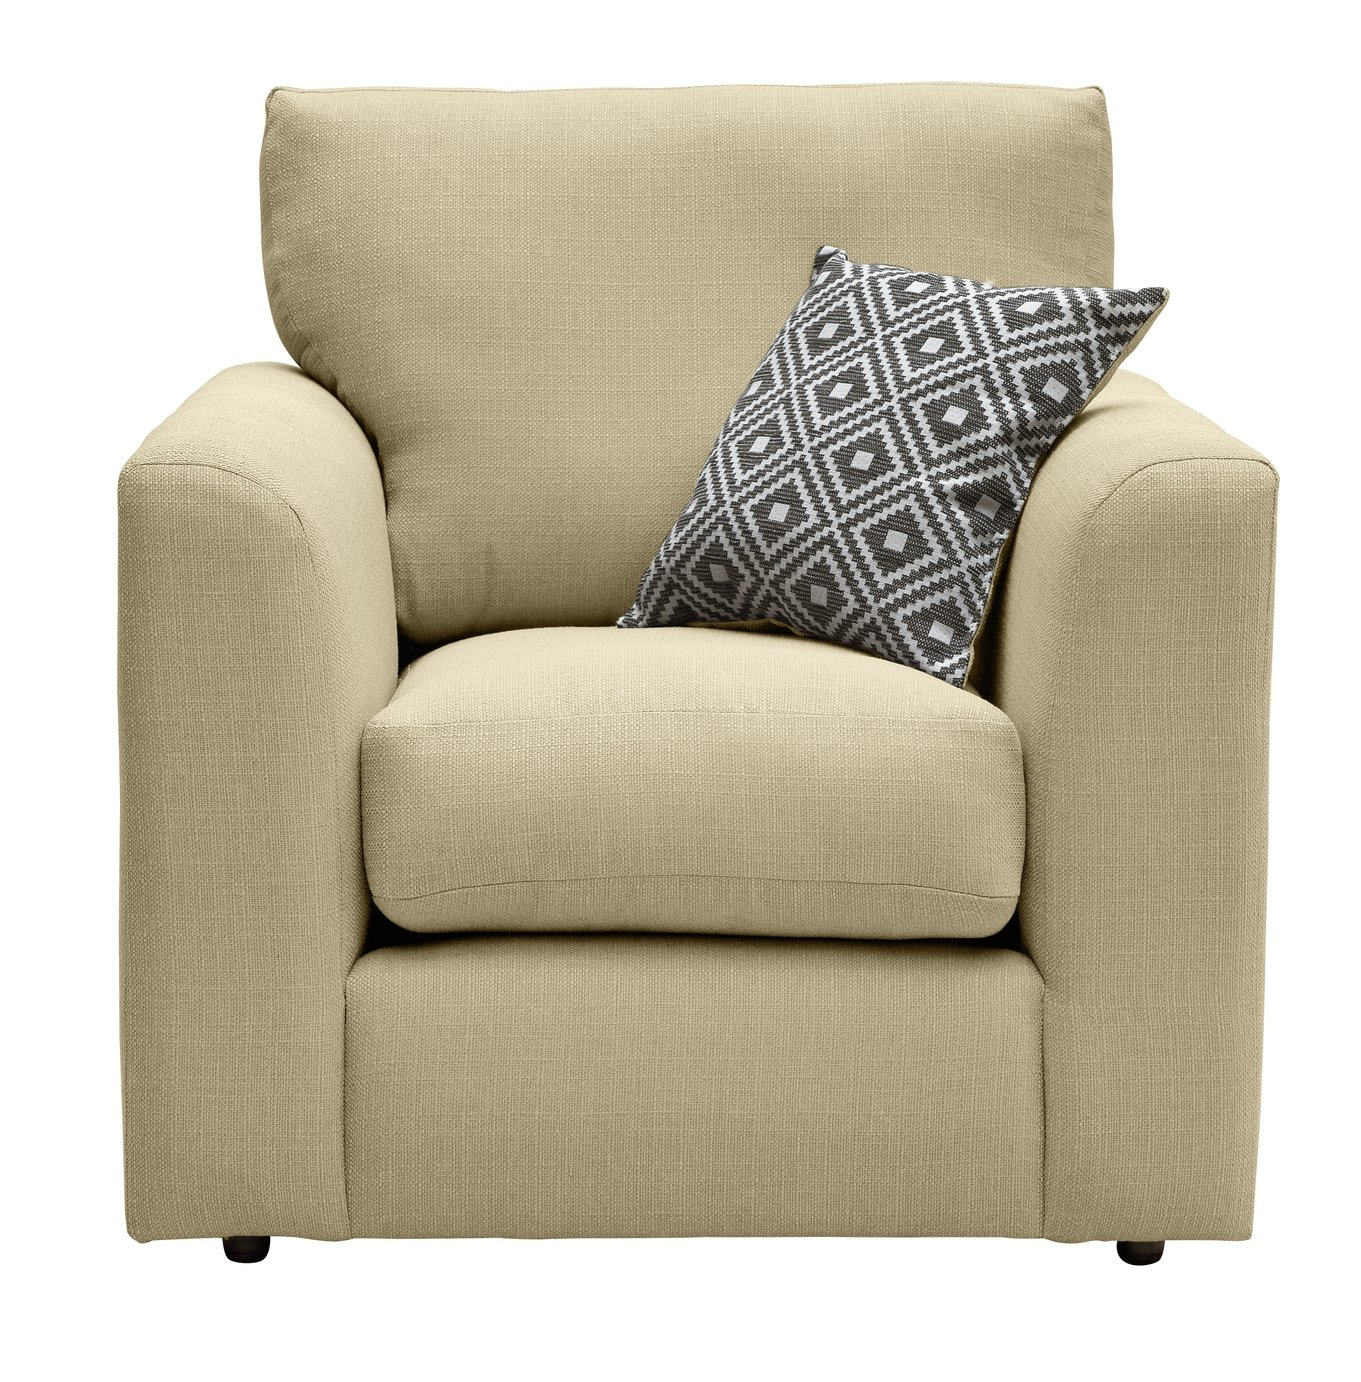 Argos Home Cora Fabric Armchair review